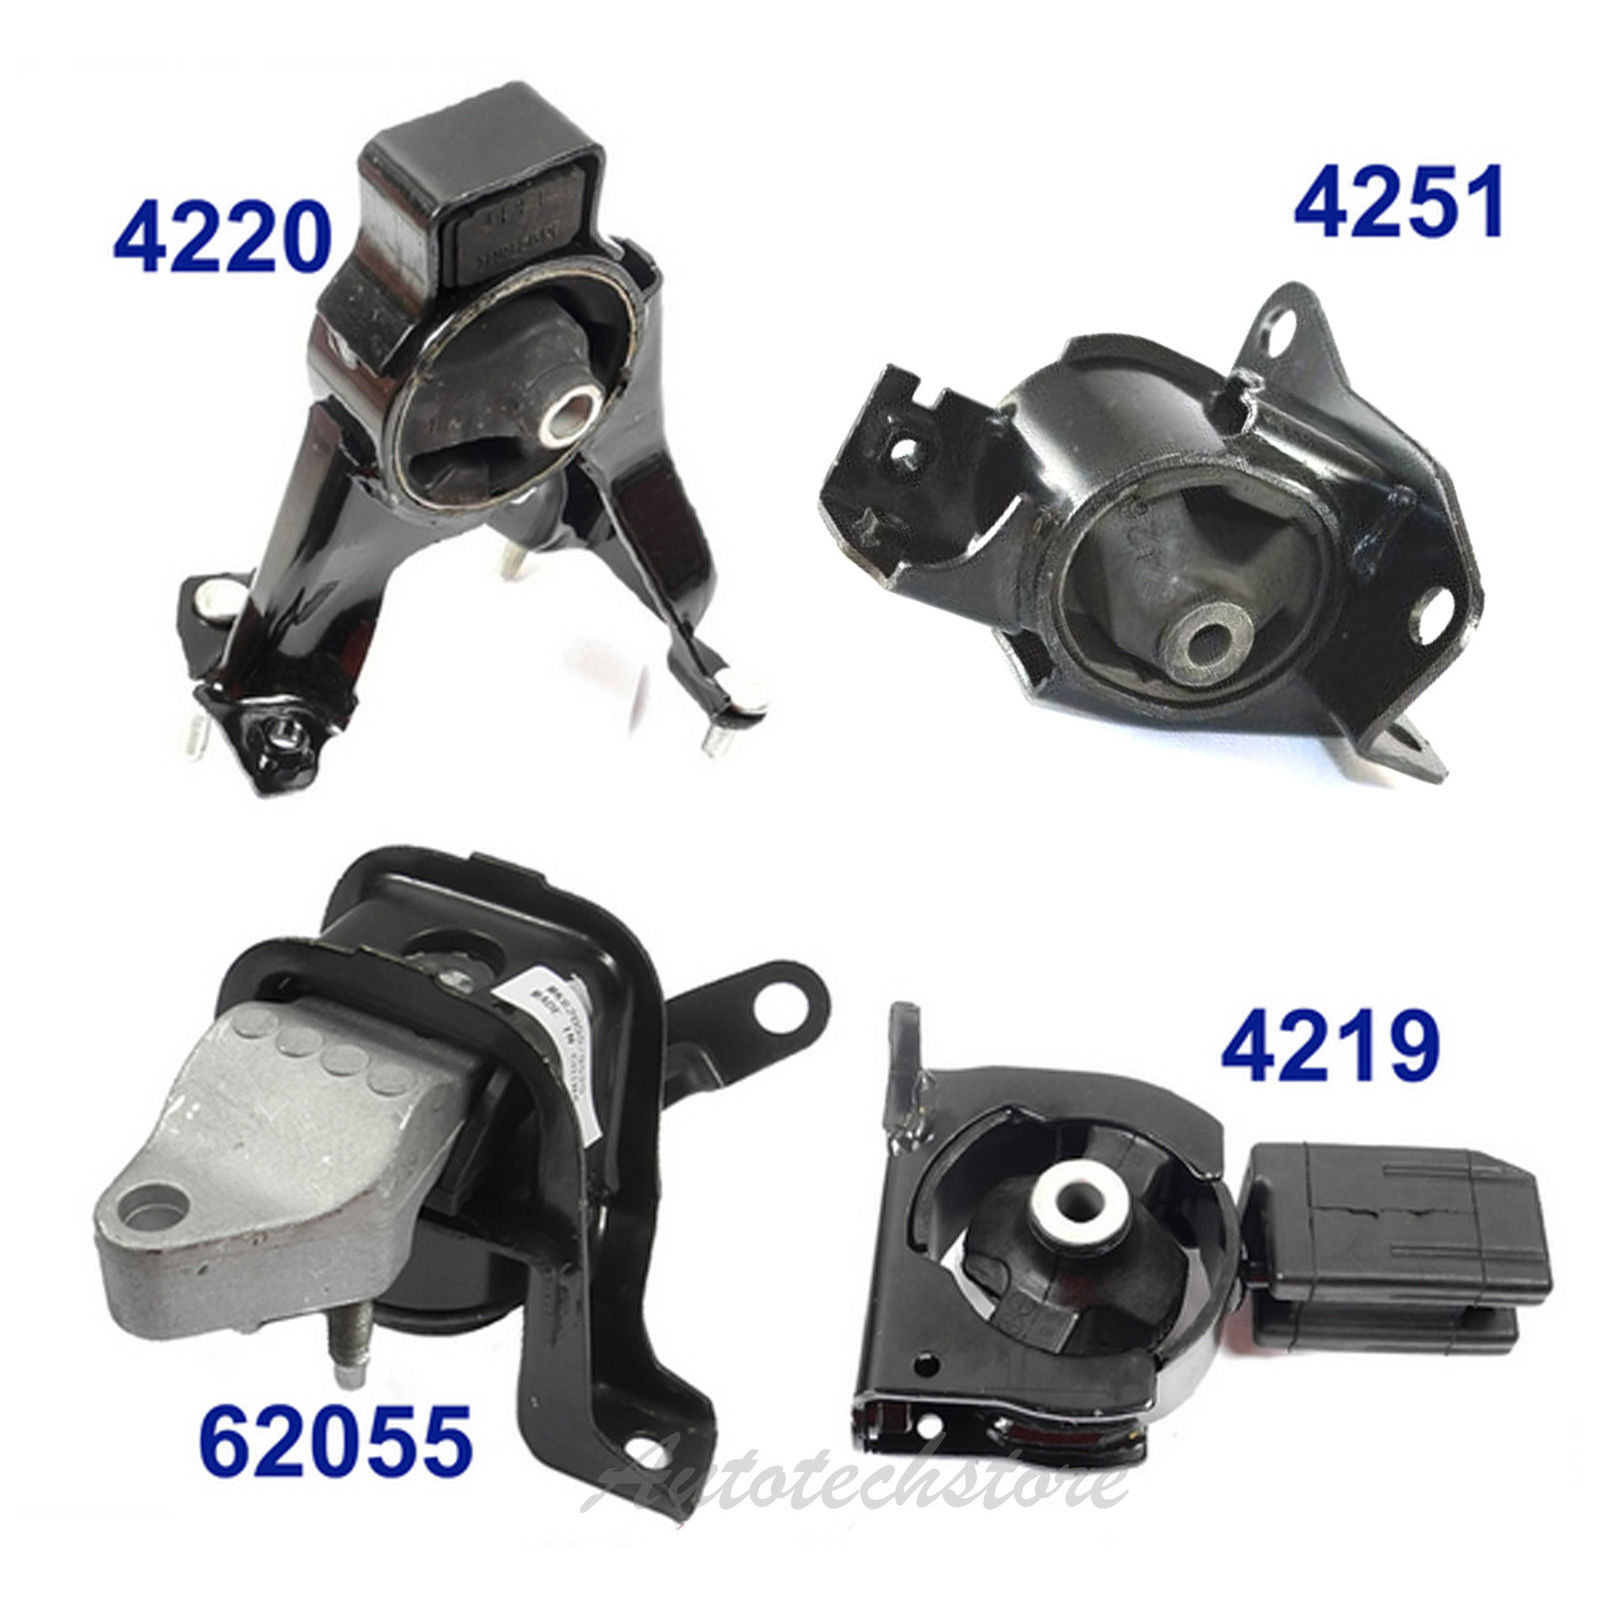 Front Engine Motor Mount For 2000 2003 2004 2005 Toyota Celica 1.8L New 4219